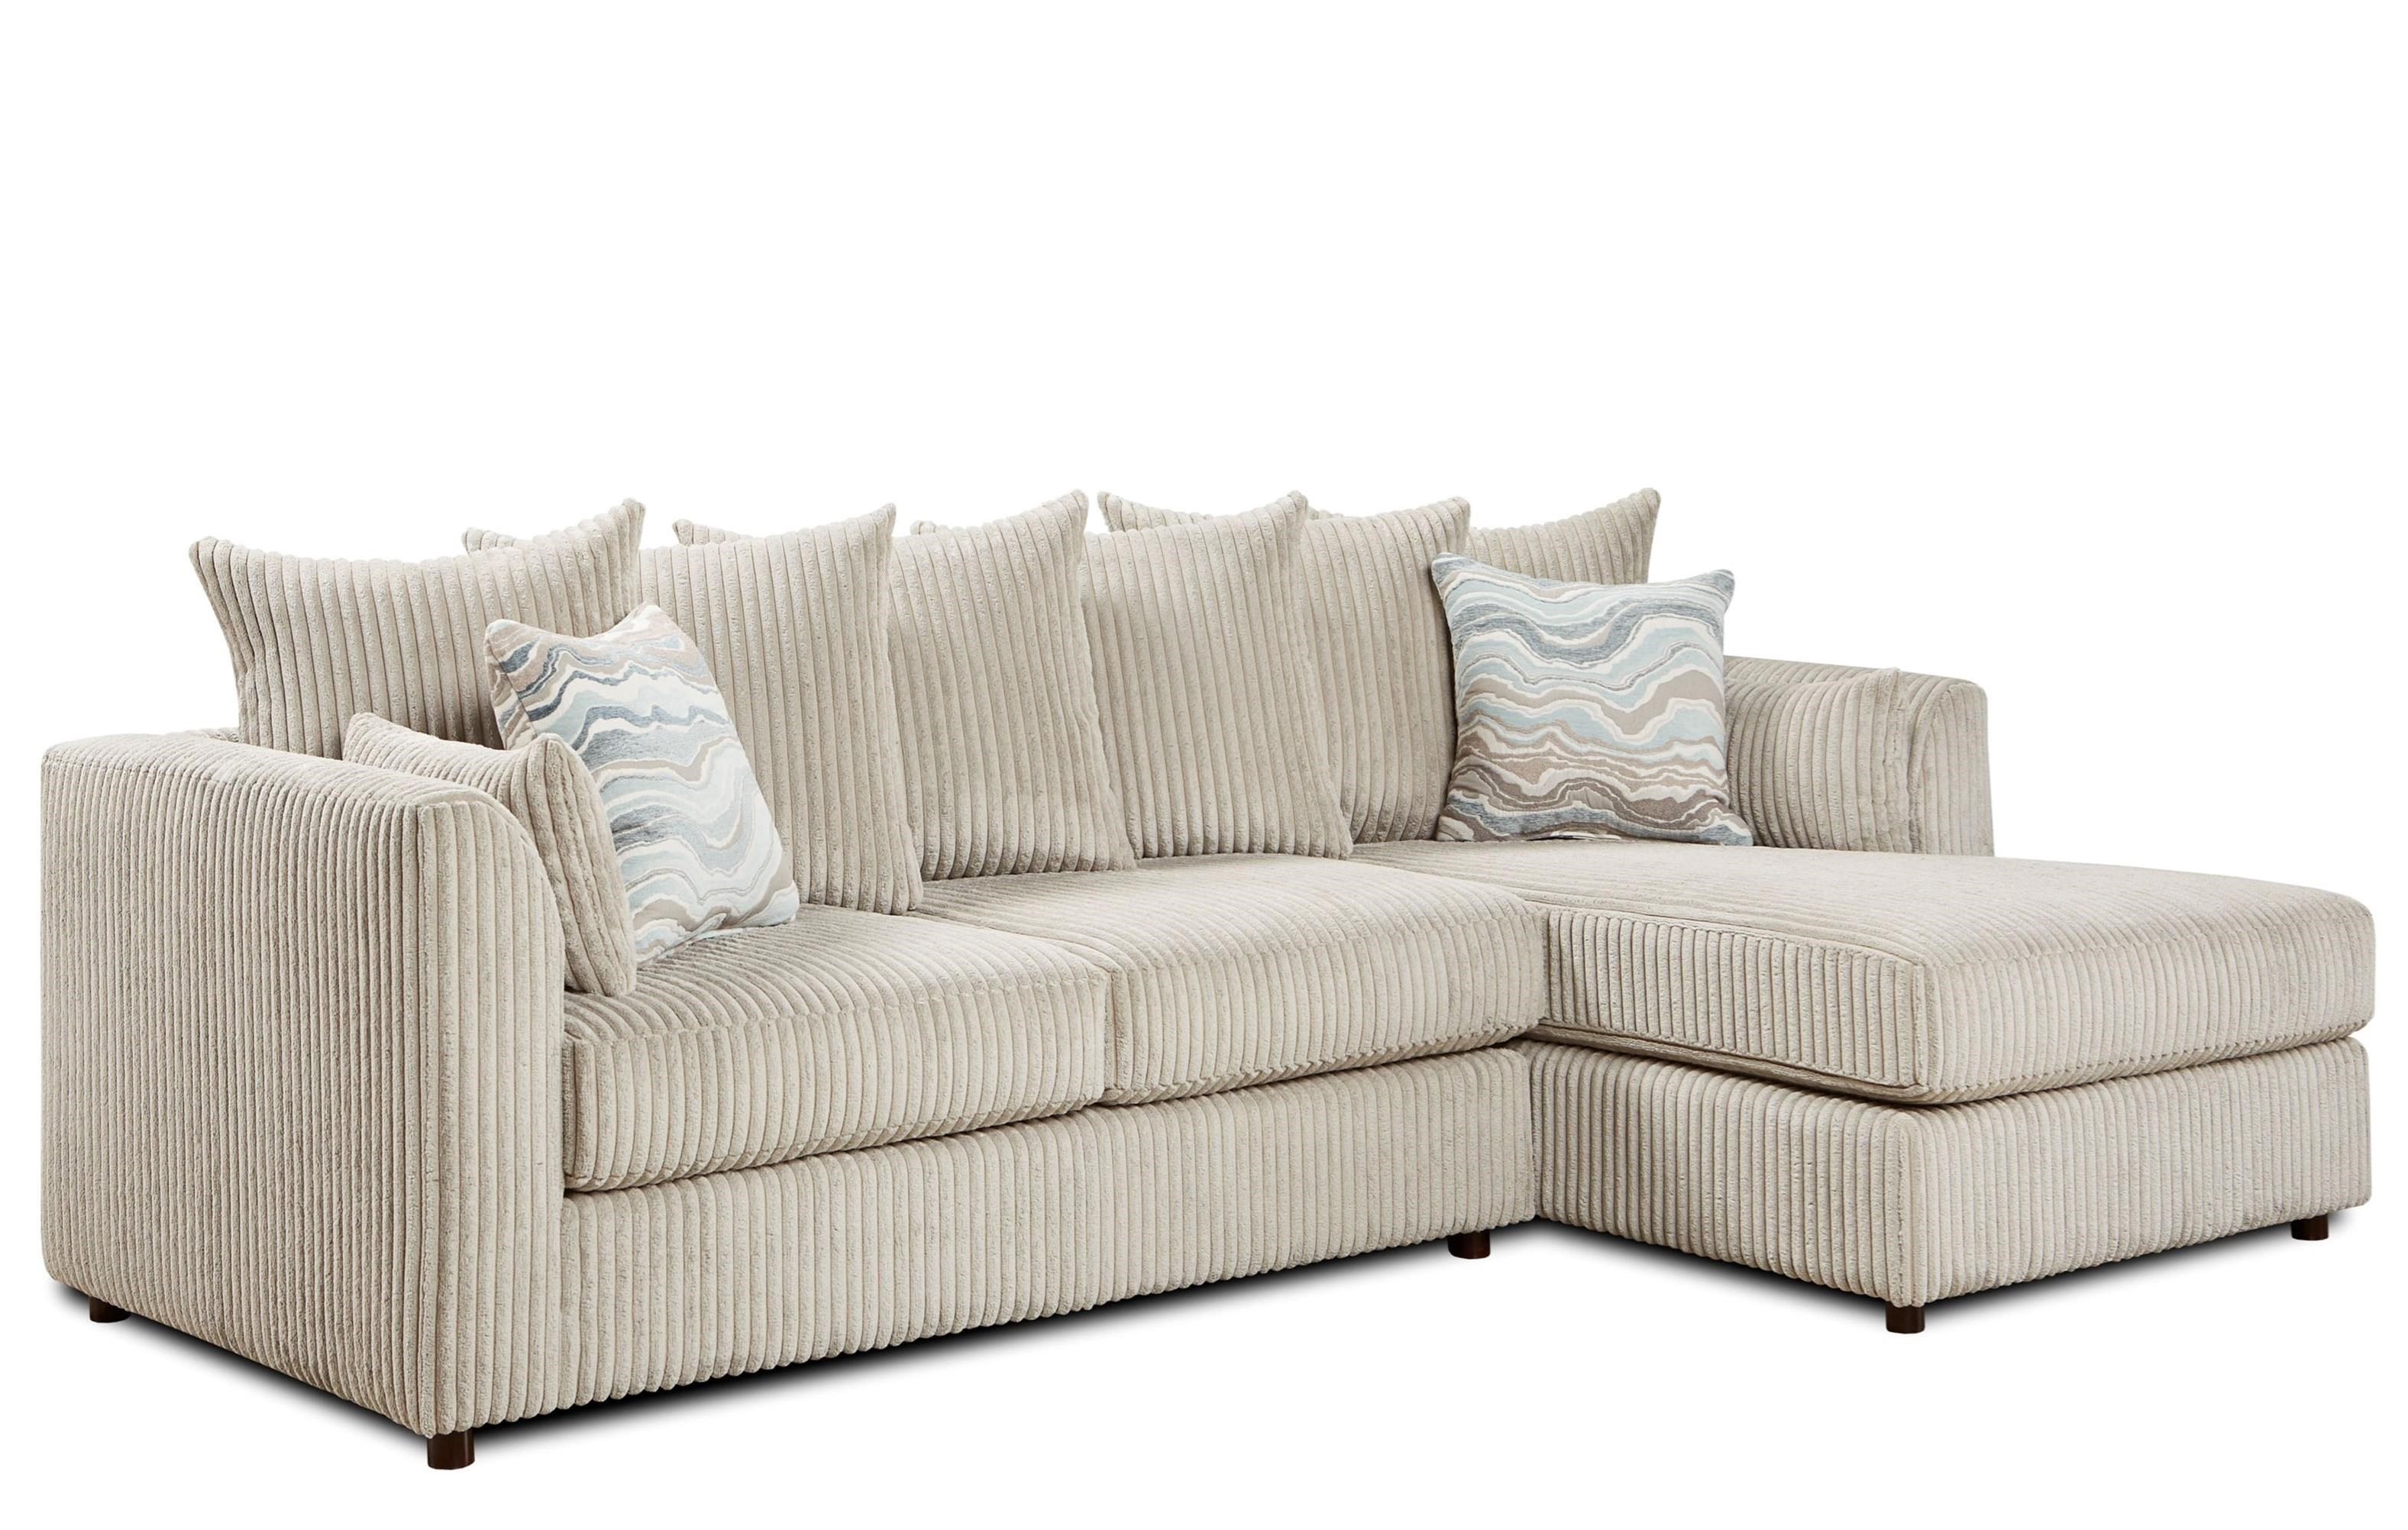 Fusion Furniture 2053 2 Piece Sectional - Item Number: 2053-21LBillow Dove+26RBillow Dove